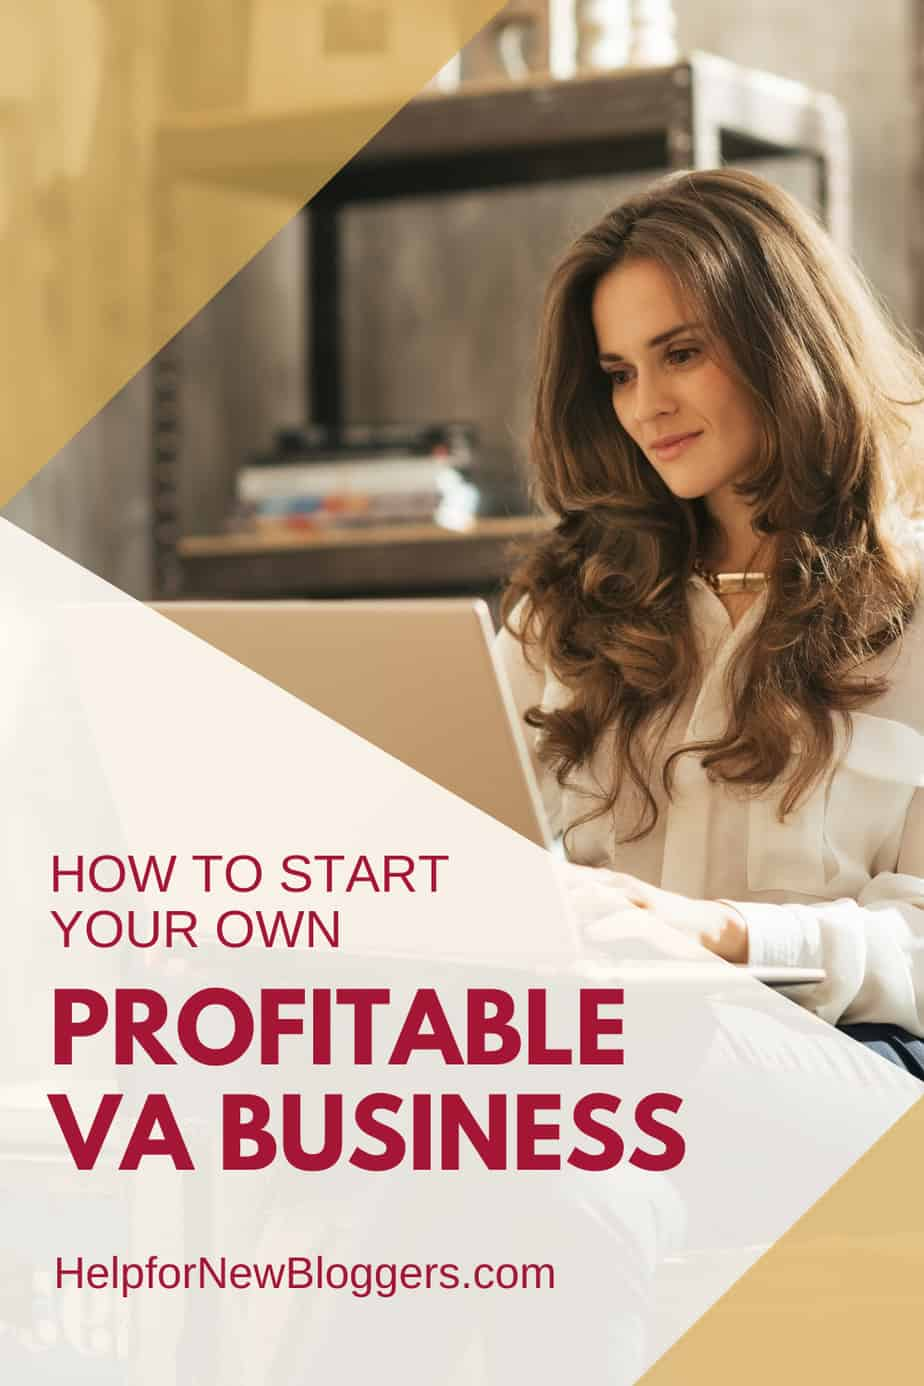 How to start a profitable VA business